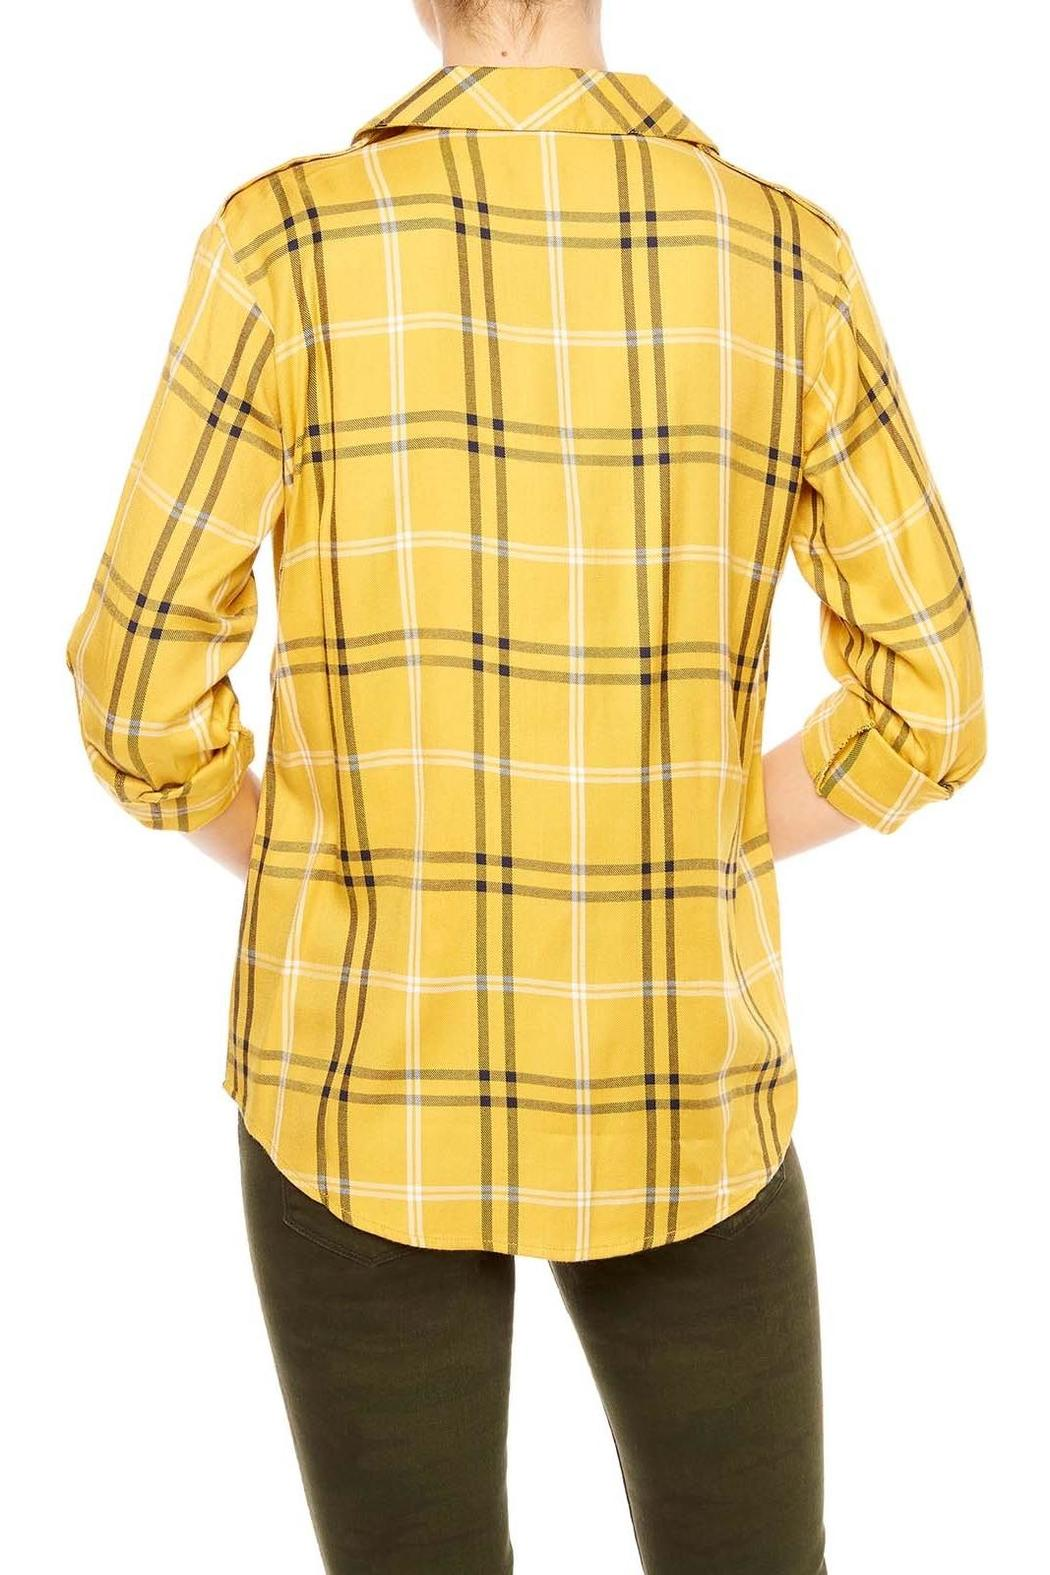 Sanctuary Mustard Plaid Shirt - Front Full Image